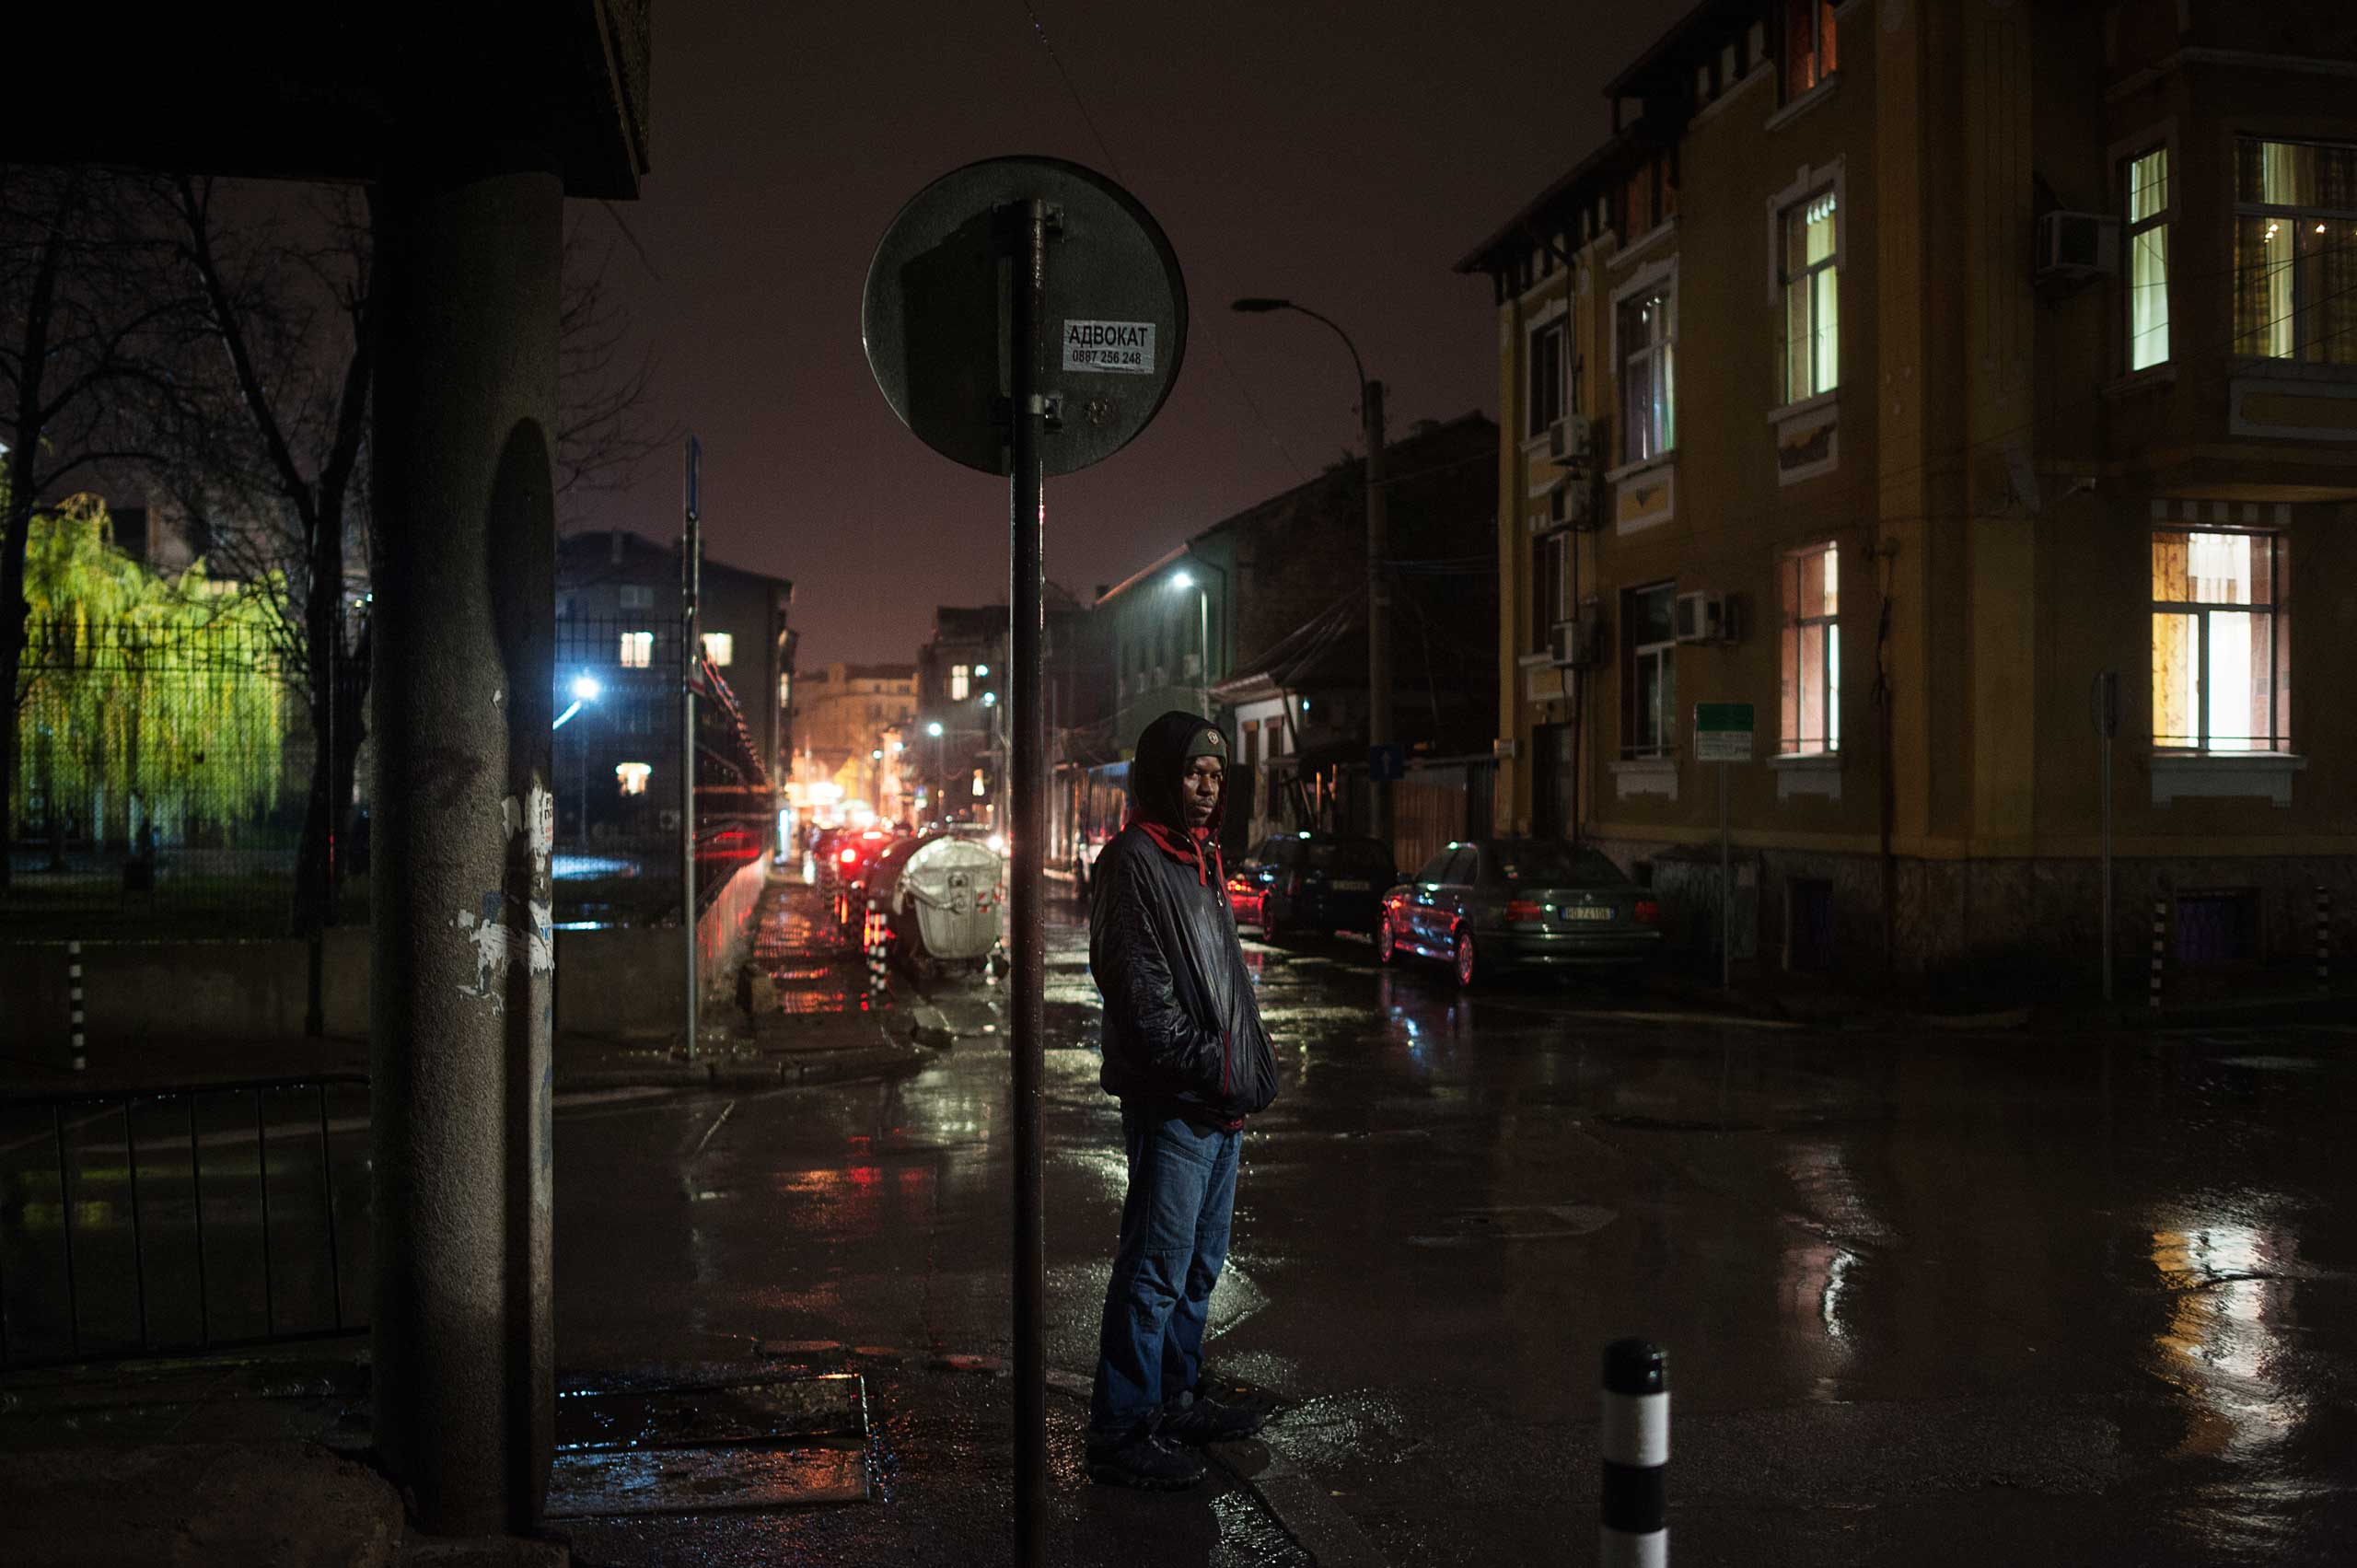 Mansour, an immigrant from Mali waits a friend in downtown Sofia, Bulgaria, Dec. 7, 2014. He is in a shelter in south-western part of the city.